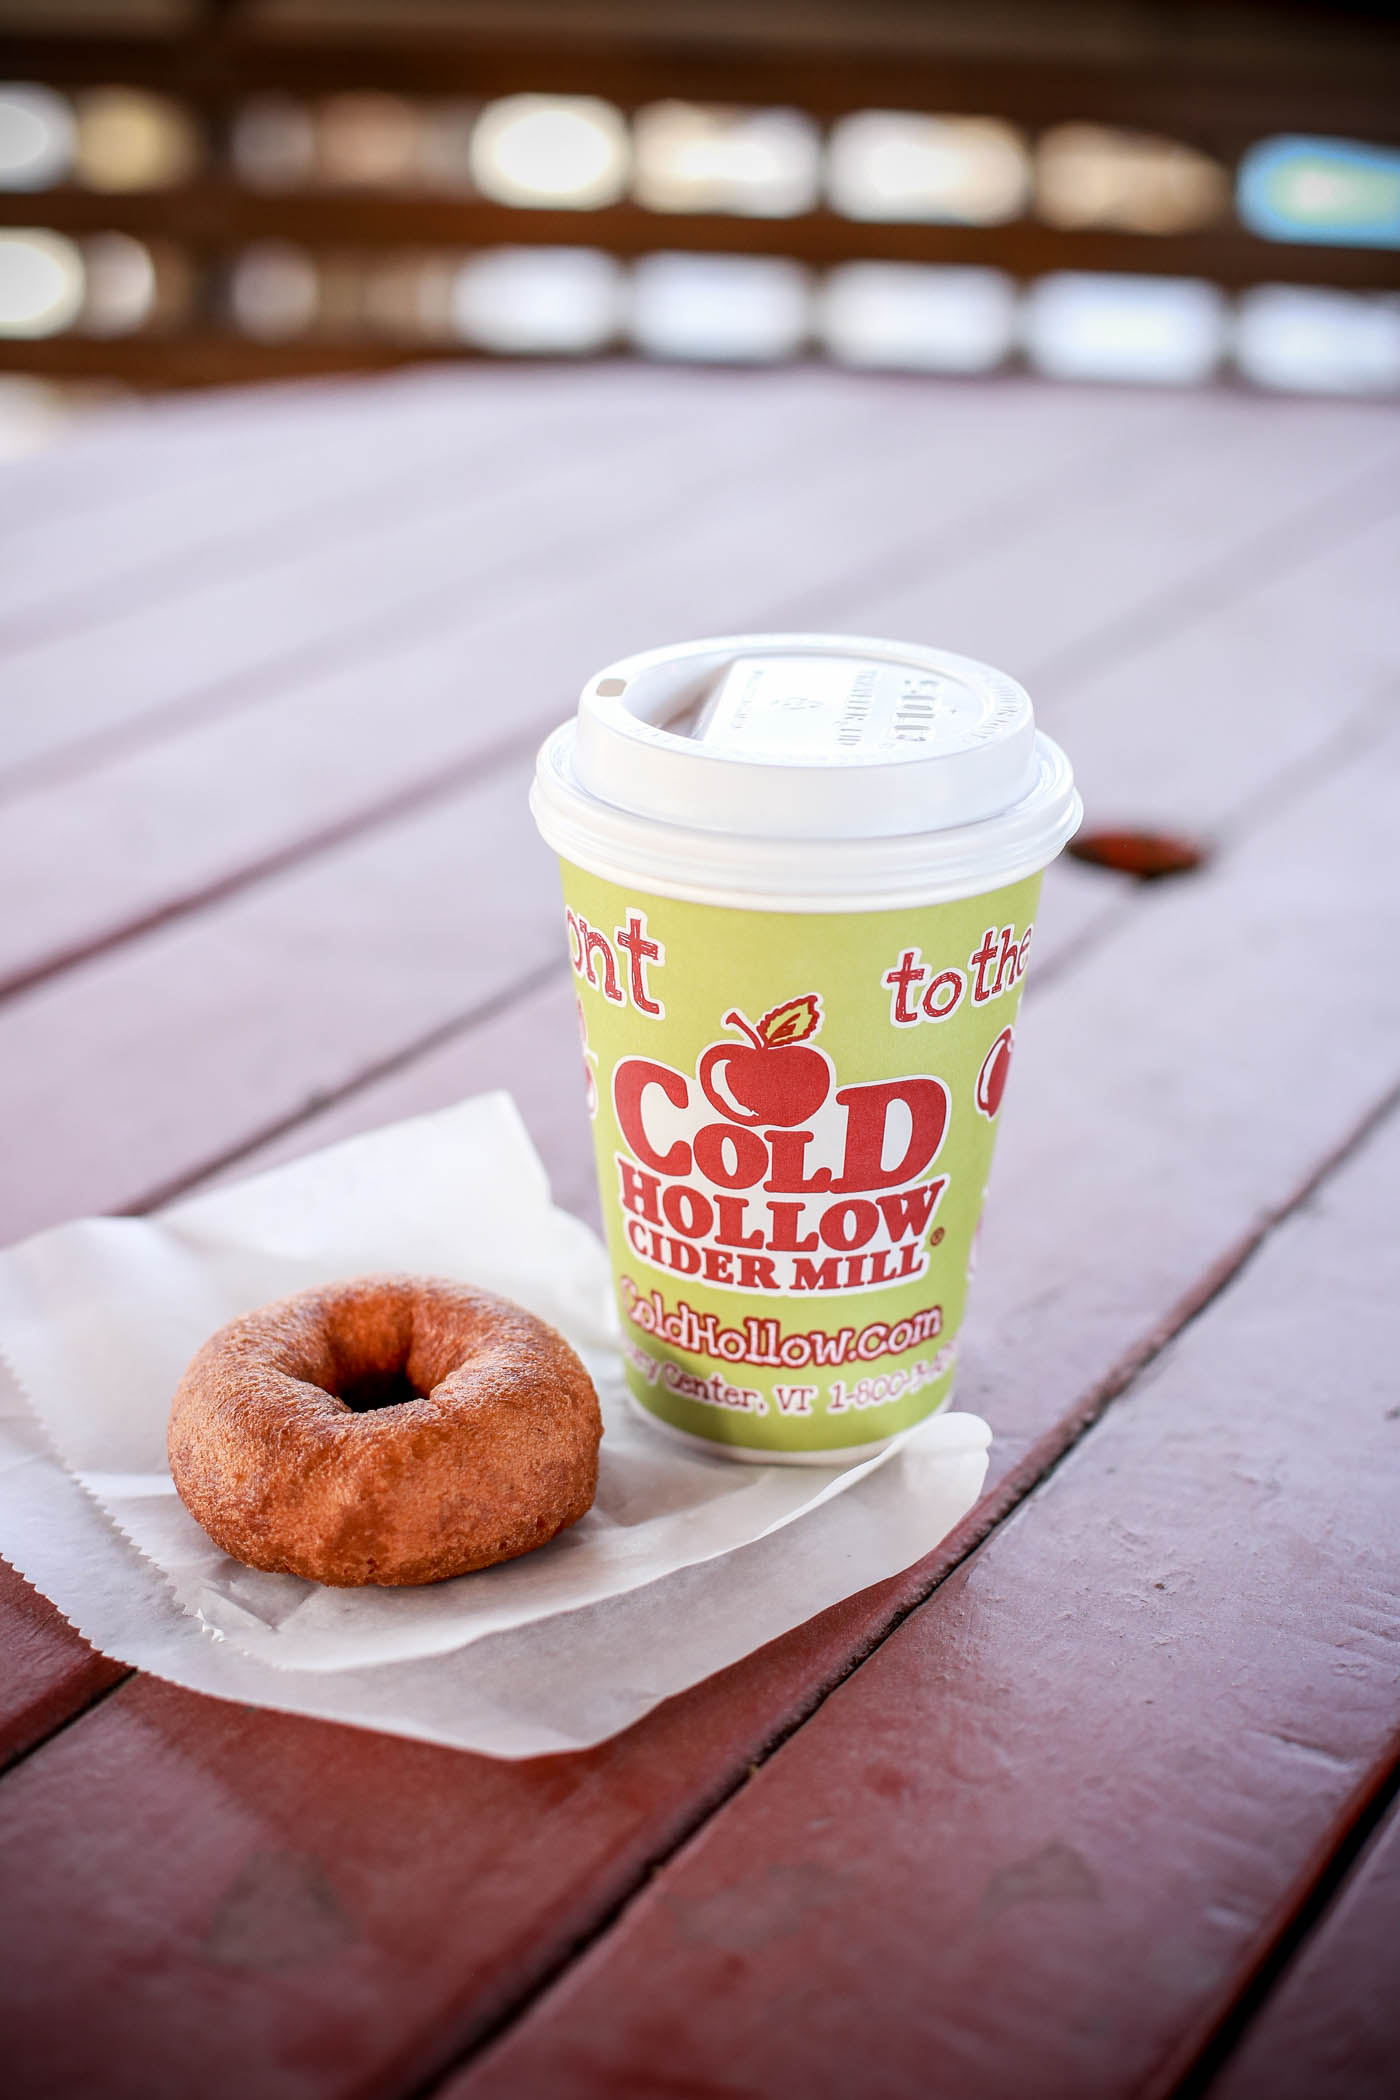 Donut and coffee in winter